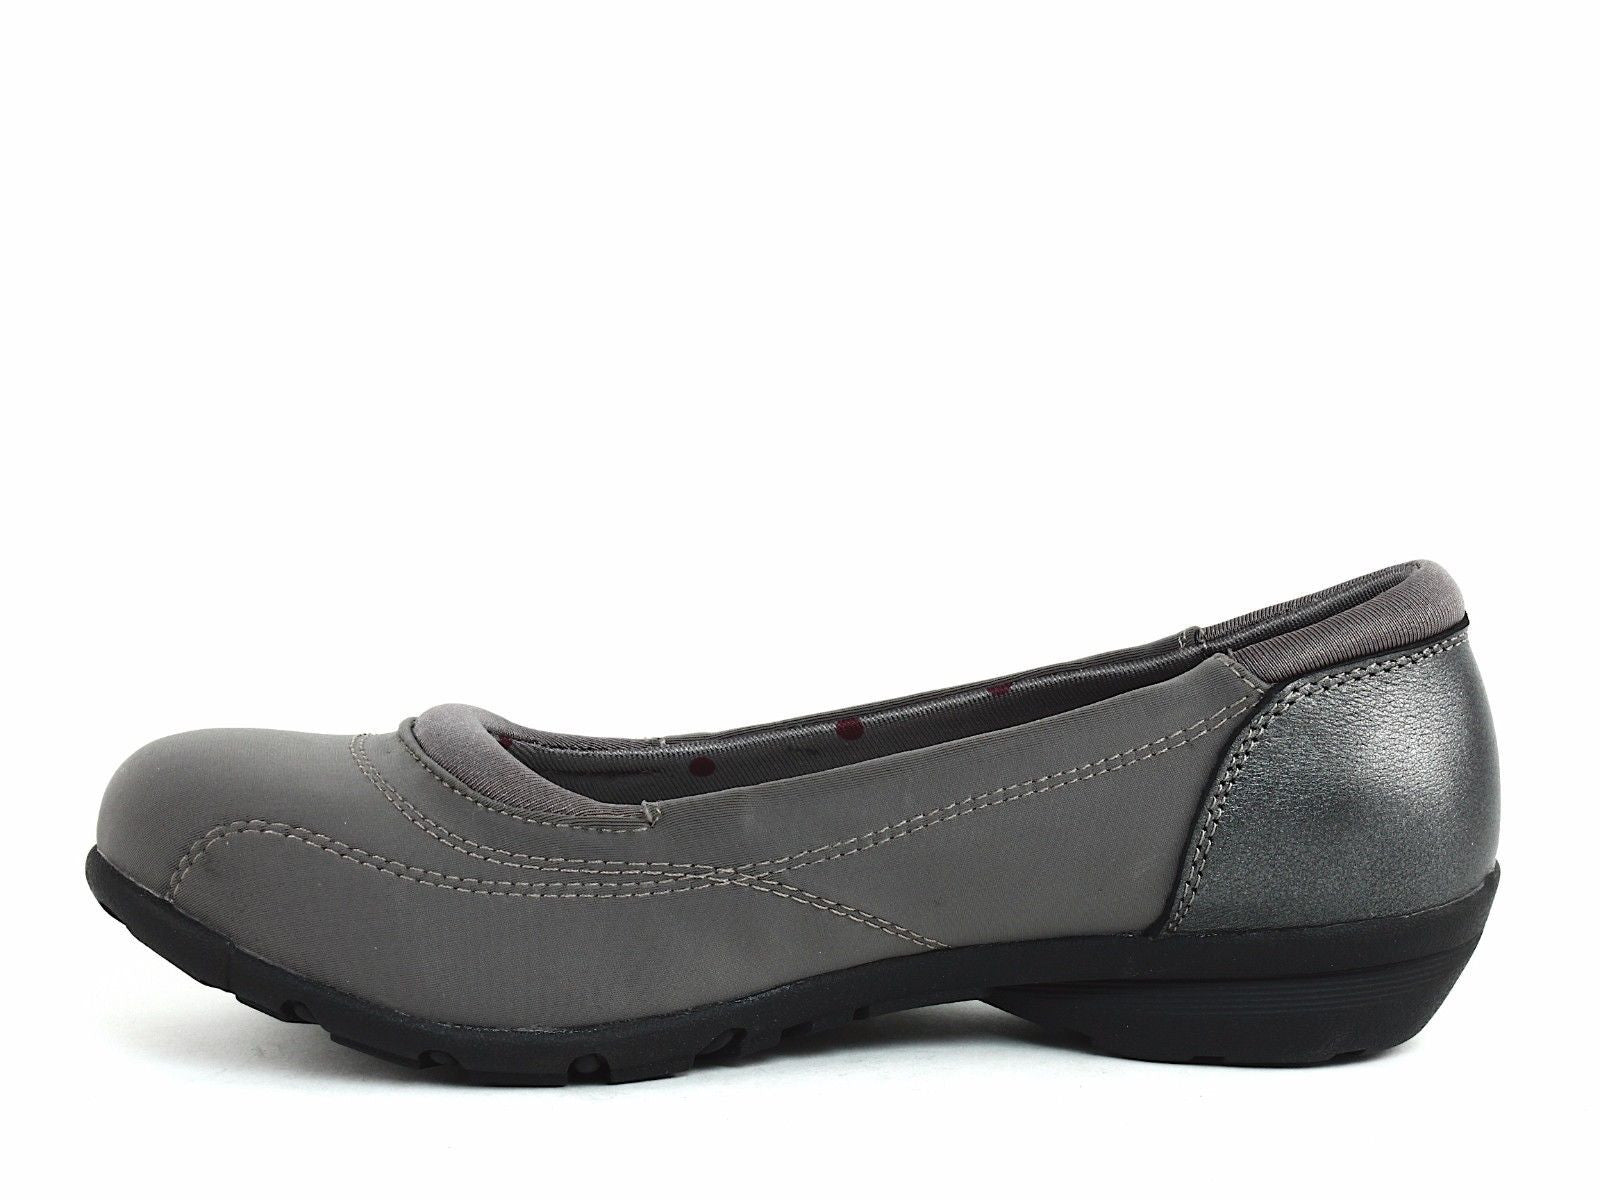 Skechers Career PRESIDENT Women's Casual Comfortable Loafer Flat Charcoal  Shoes